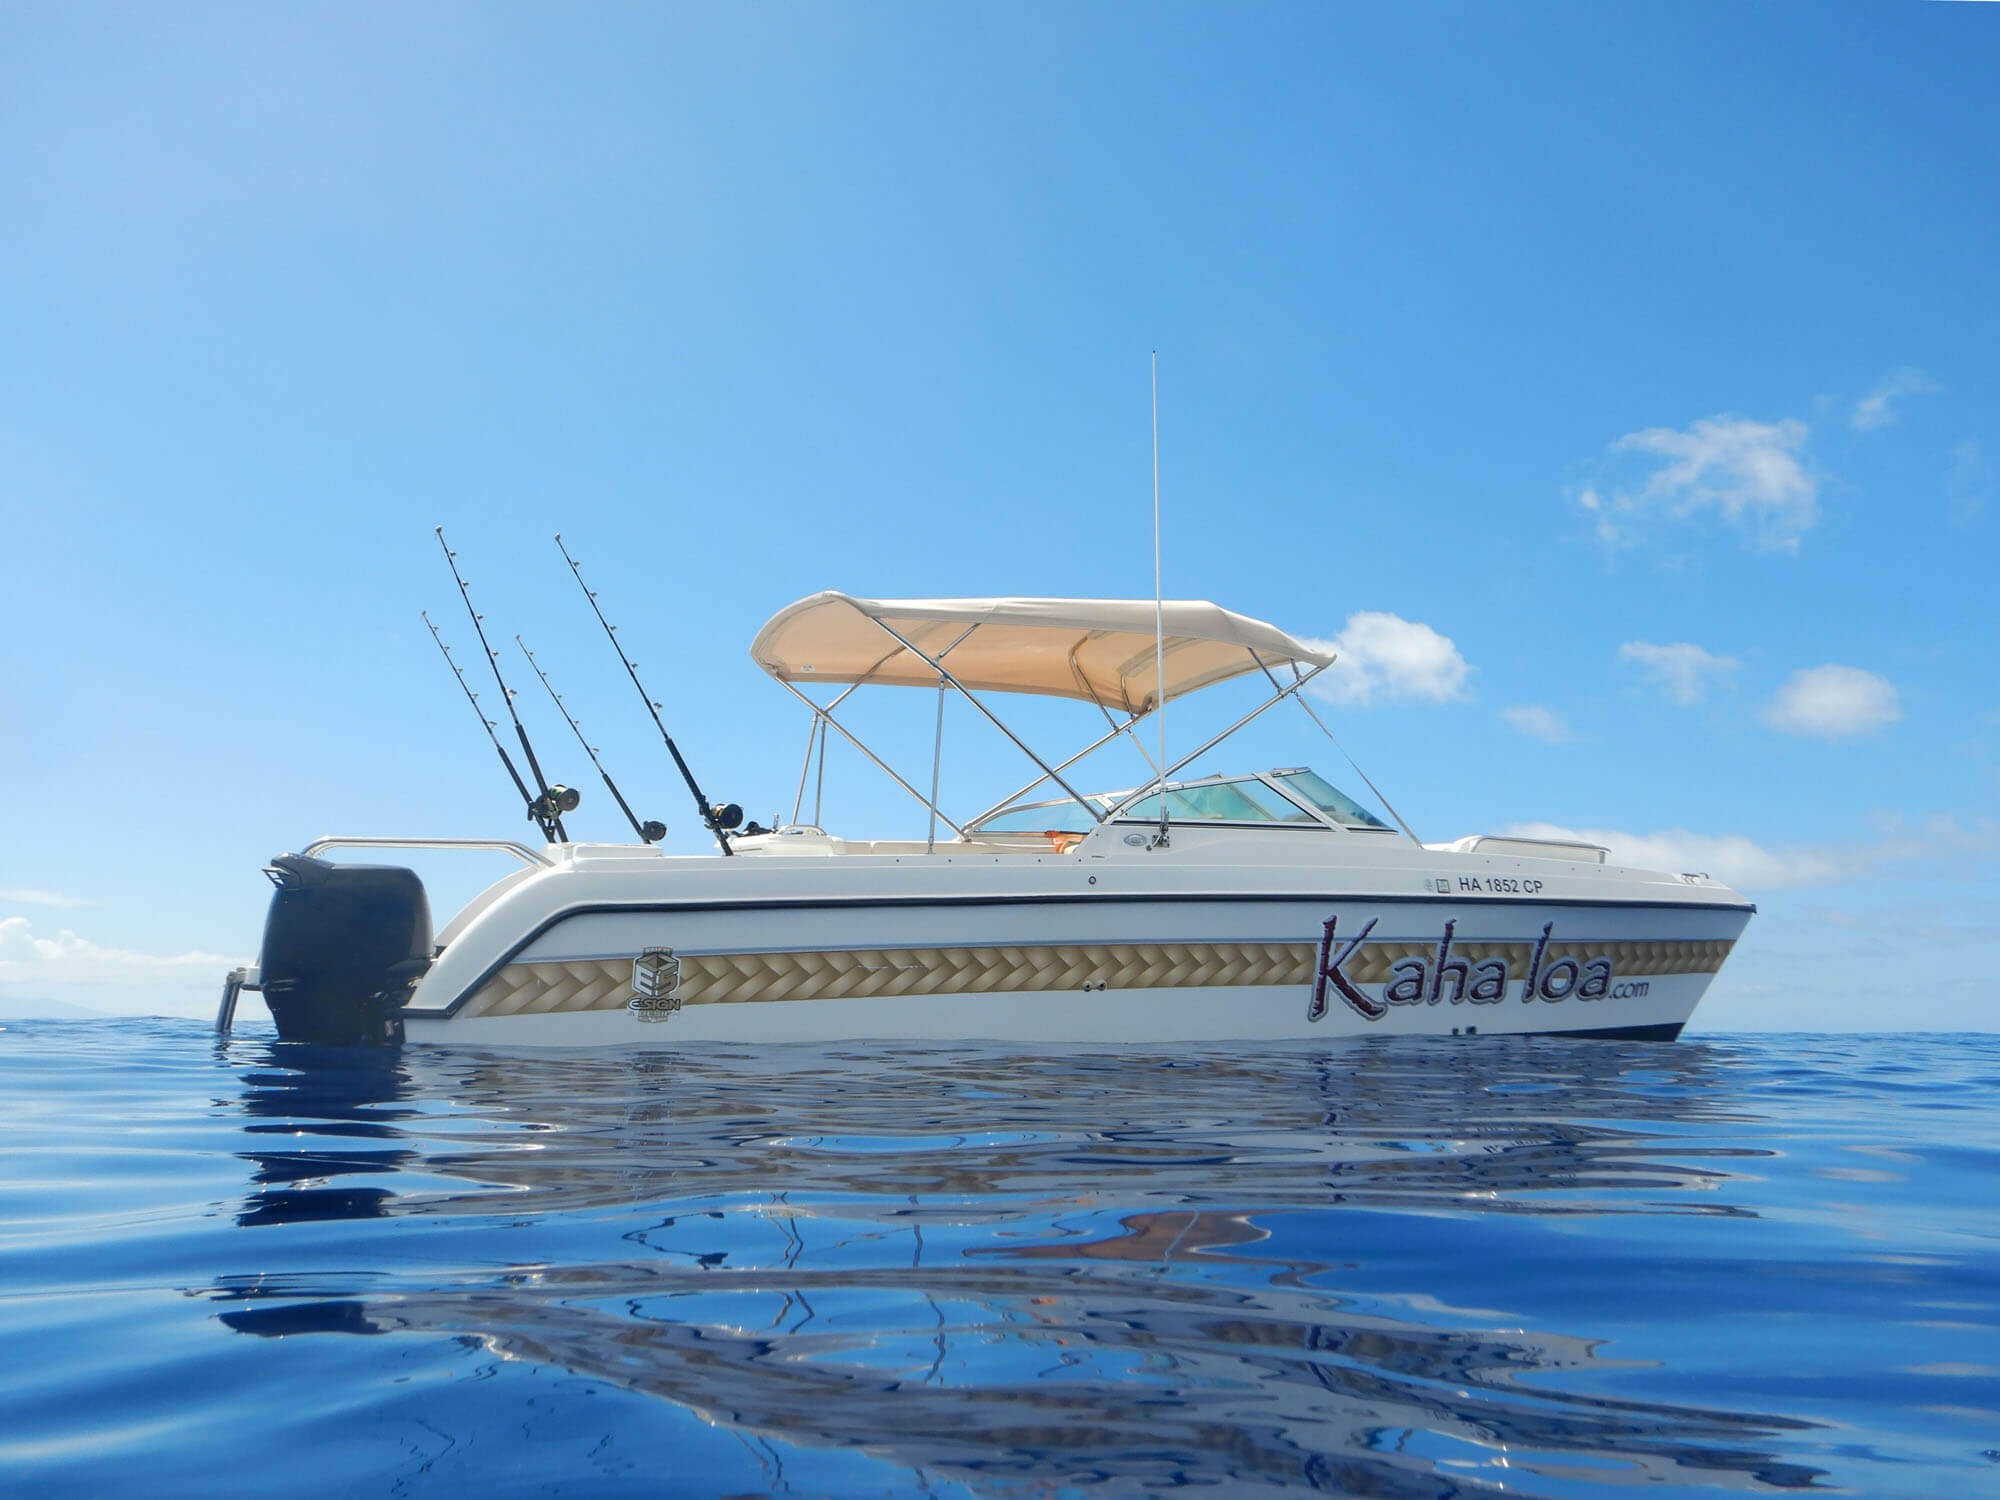 Product Private 6 Passenger Charter Boat